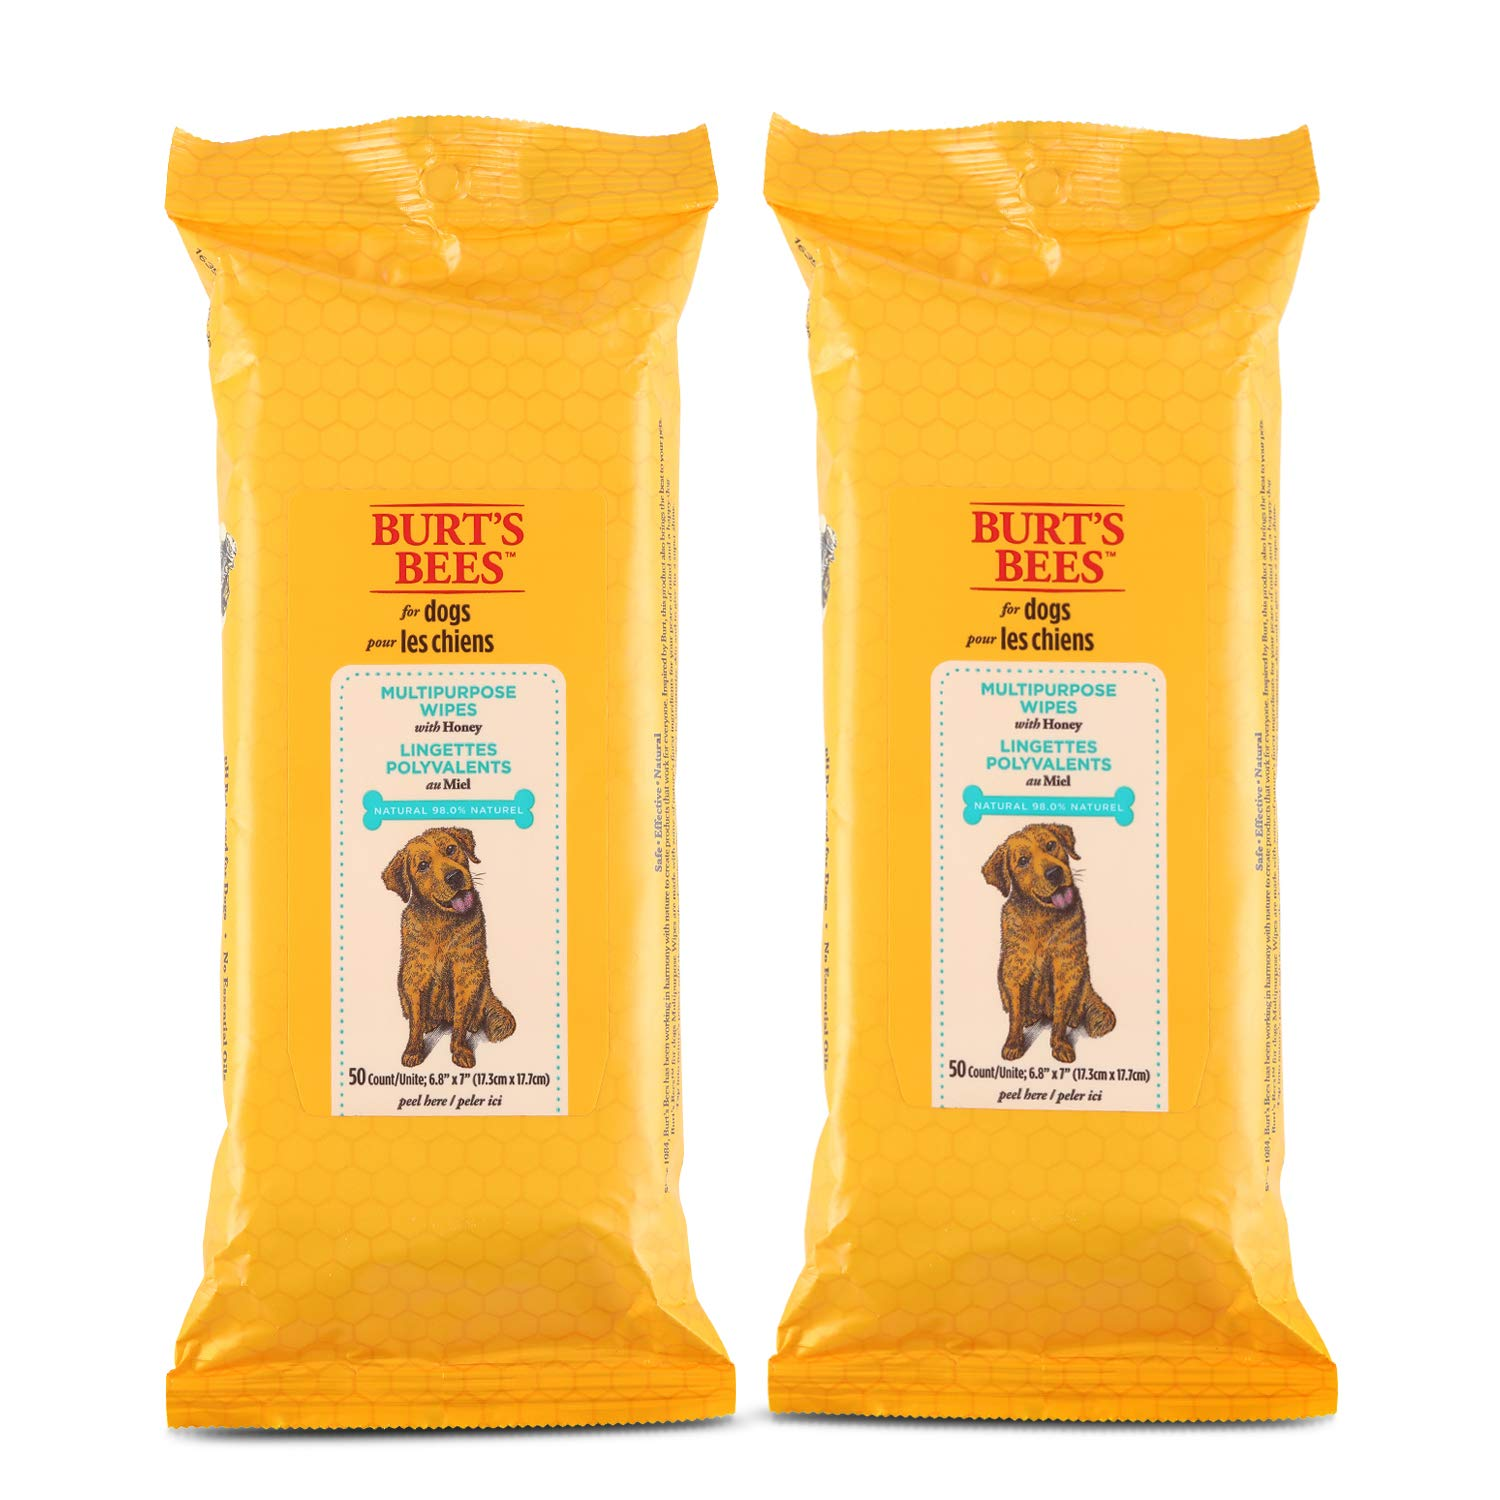 Burt's Bees For Dogs Multipurpose Grooming Wipes | Puppy and Dog Wipes For Cleaning, 50 Count - 2 Pack